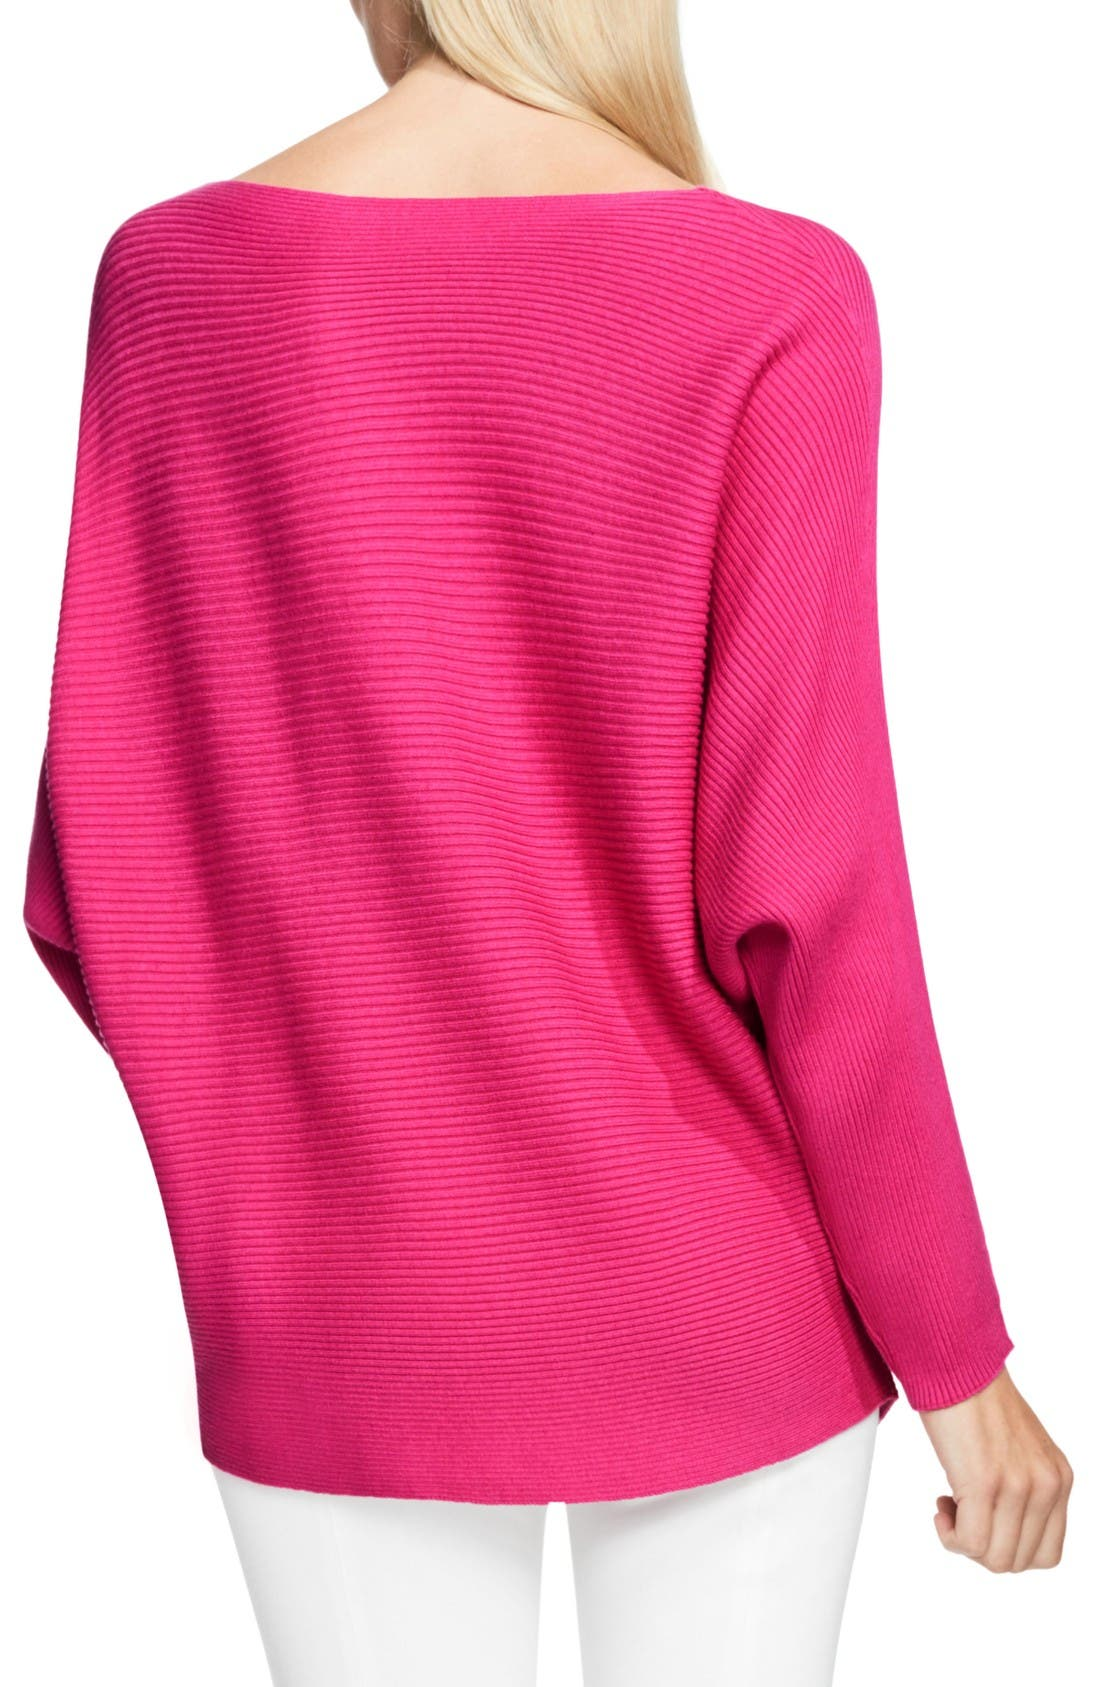 Alternate Image 2  - Vince Camuto Rib Knit Dolman Sweater